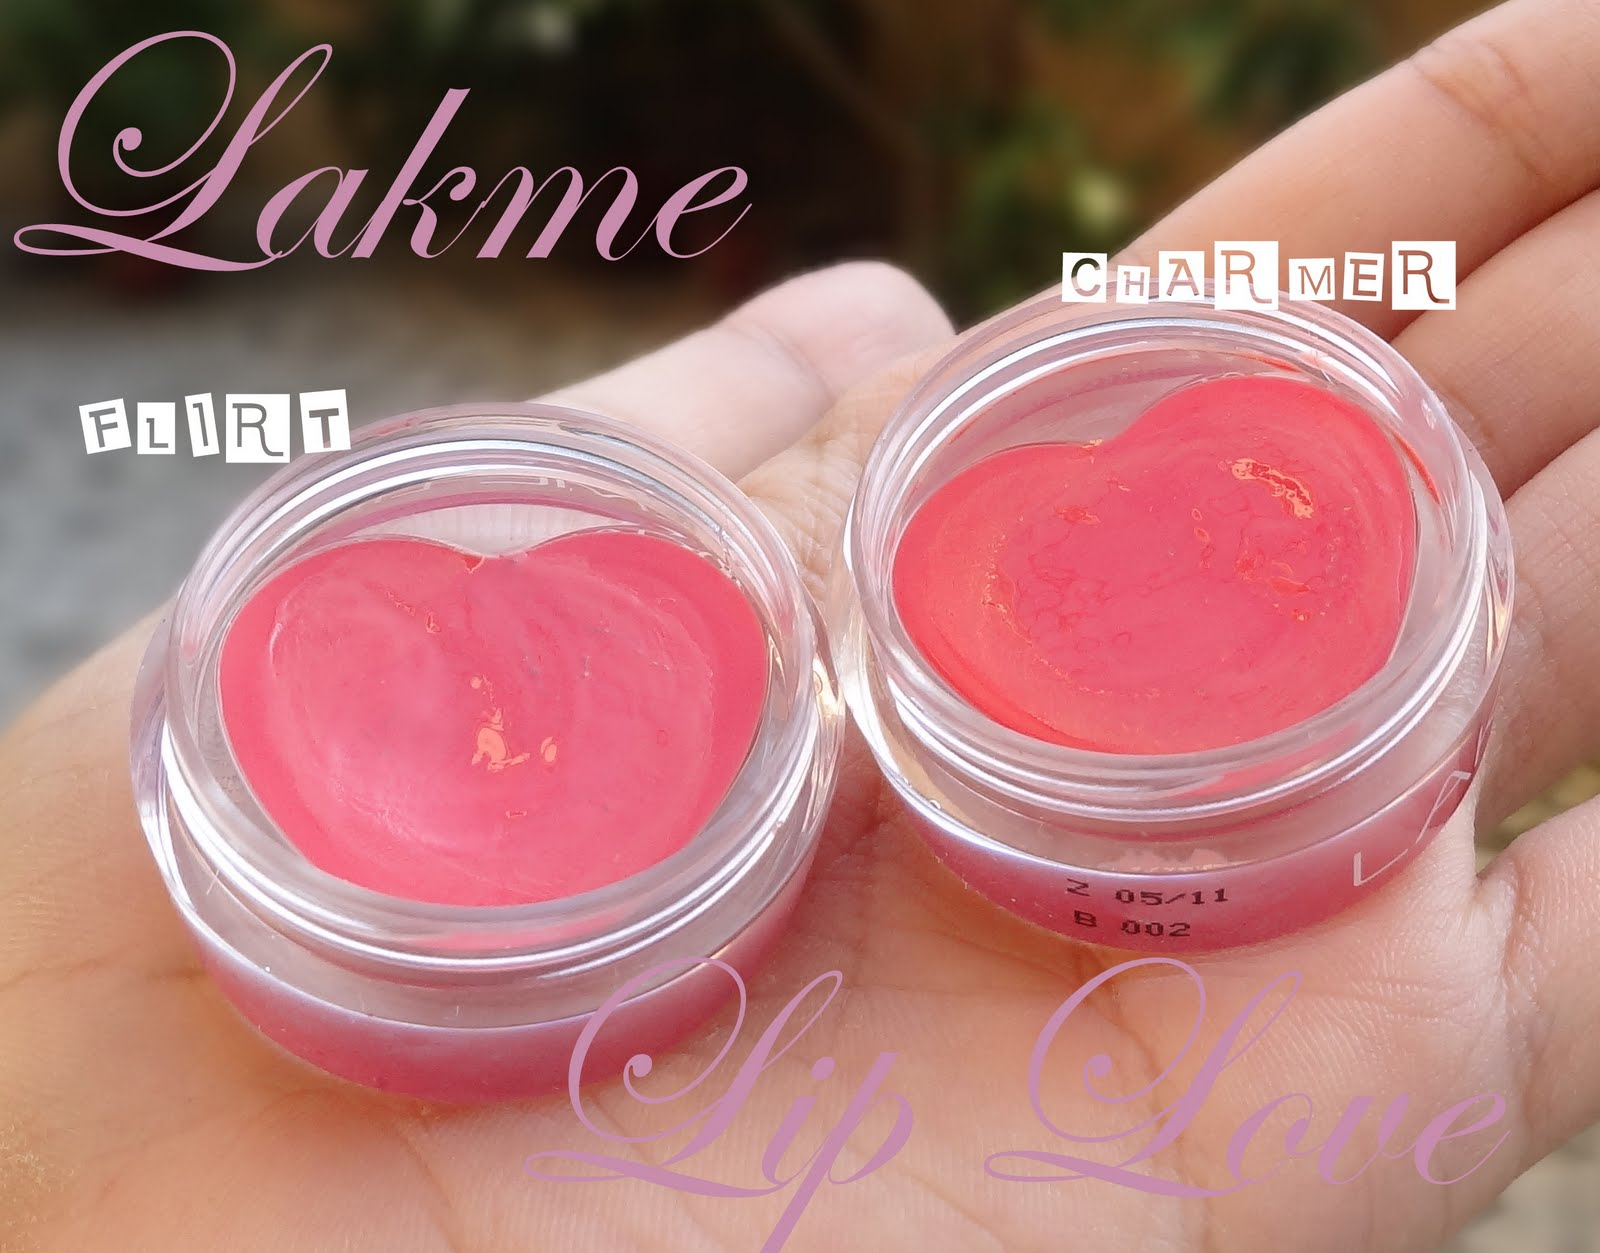 lakme lip conditioner flirt Let's face it: most men hate oodles of lipstick, or at least my man does so with valentine's day around the corner, it's essential to stock up on subtle lip products that work well for date nights here are three indian lip products for soft, lush lips on valentine's day.